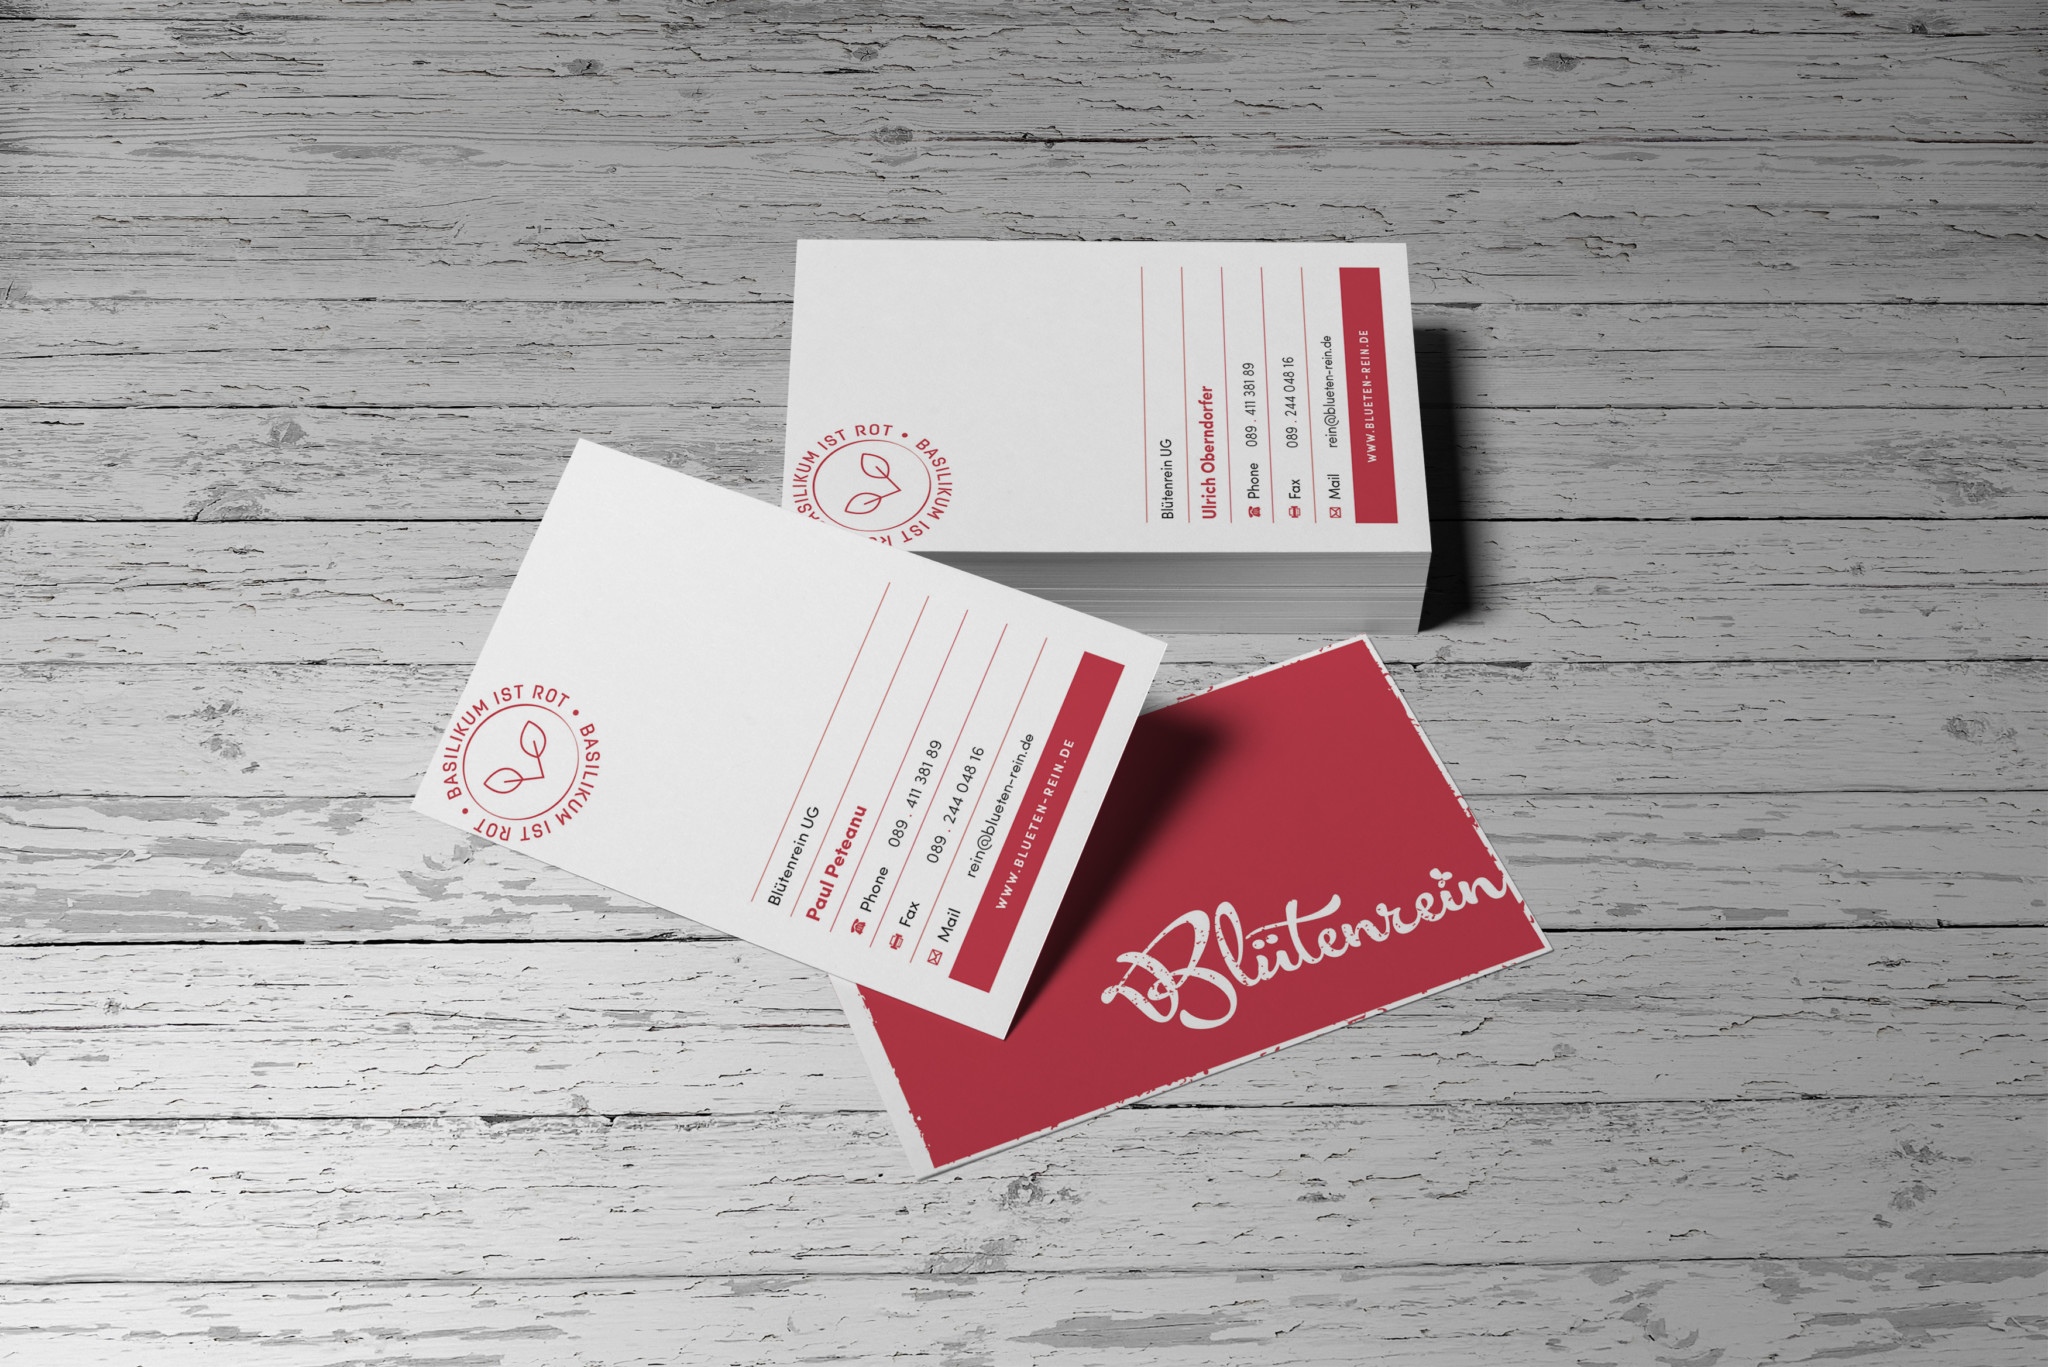 03.stationery-business-classic-mockup-inter-size